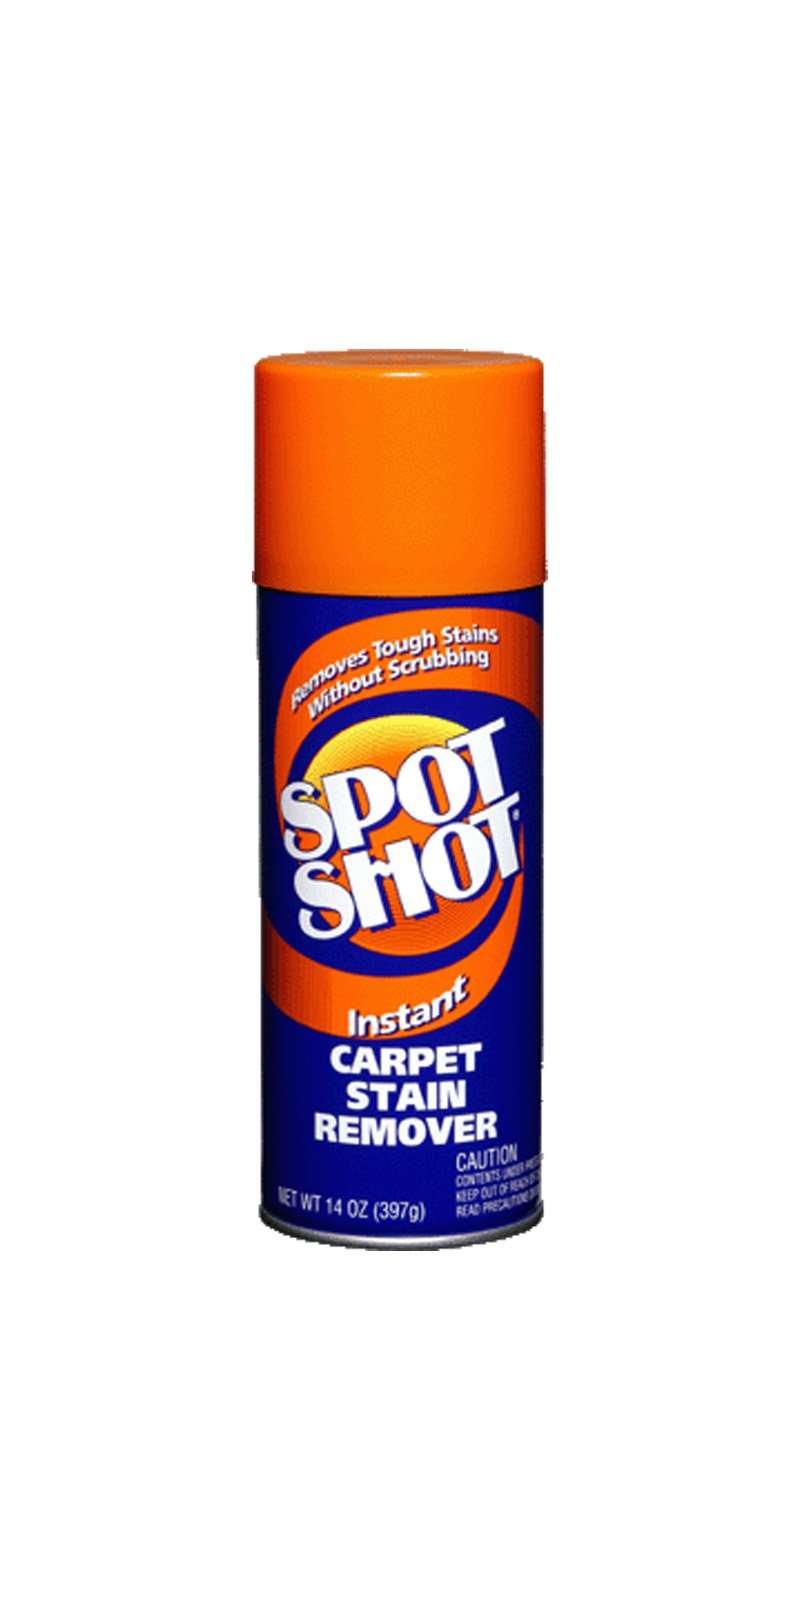 Spot Shot 009128 Aerosol Instant Carpet Stain Remover, 14 oz. (Pack of 12)